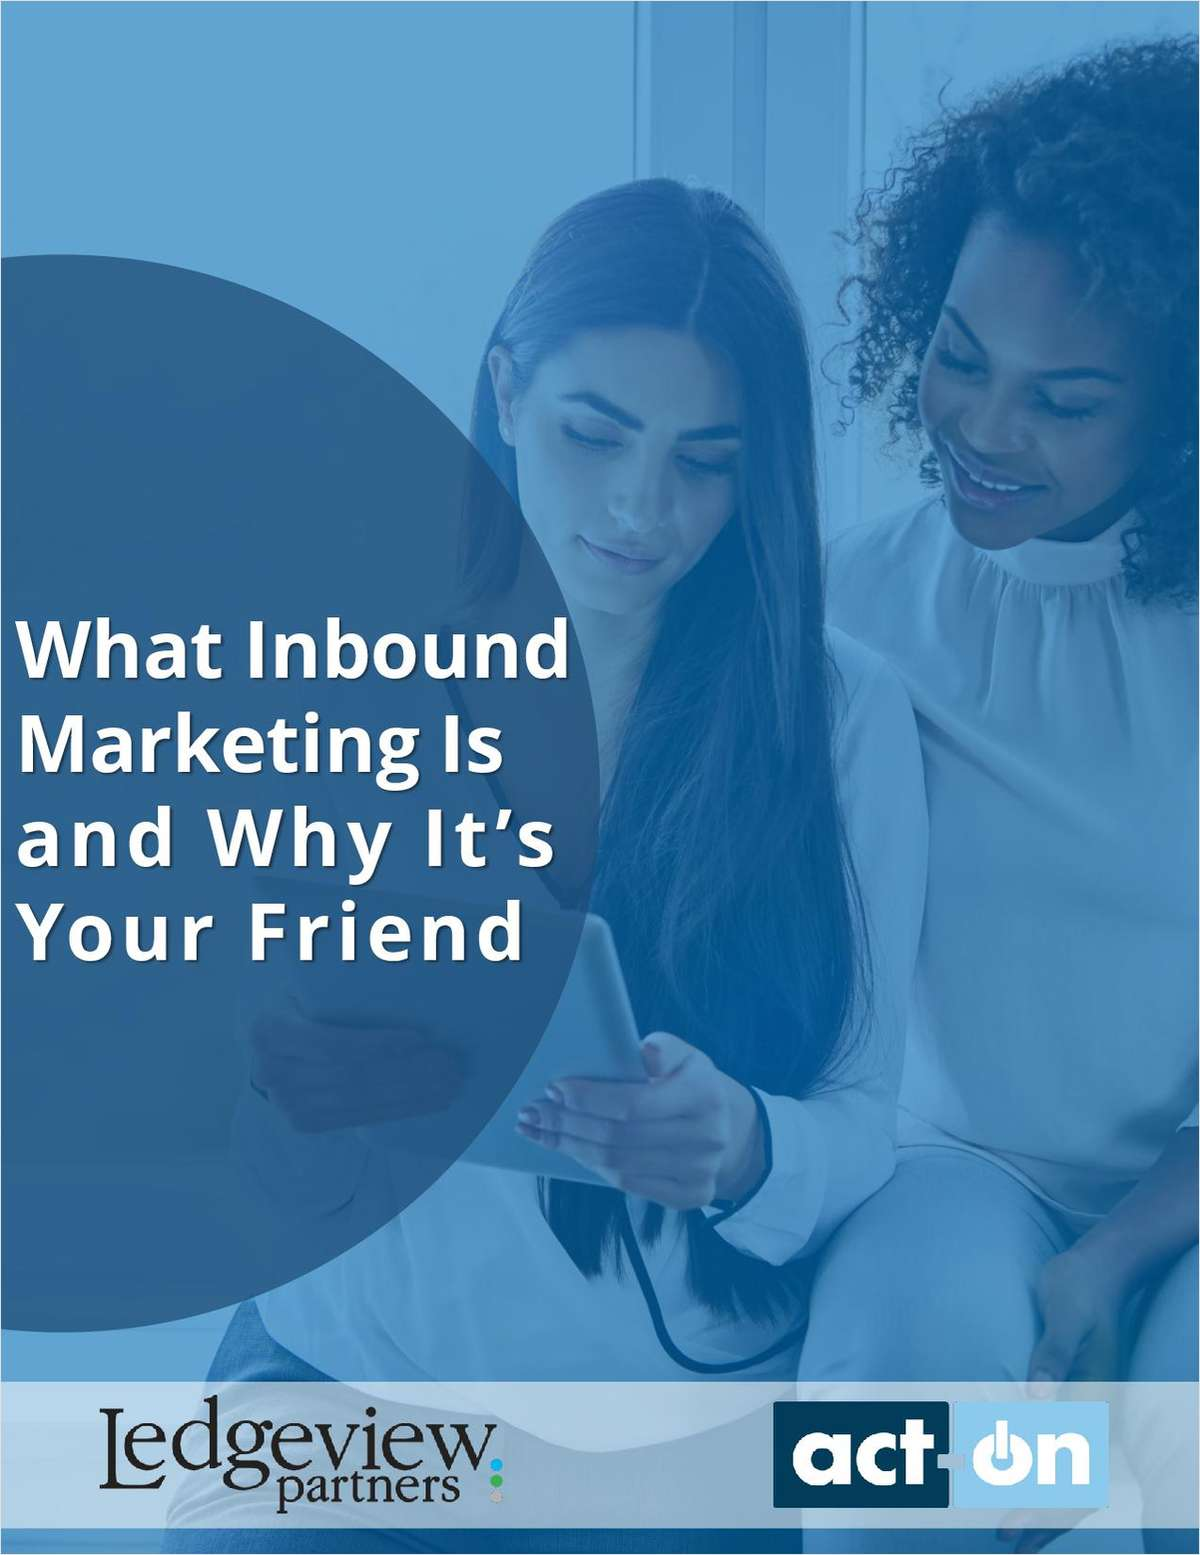 What Inbound Marketing Is